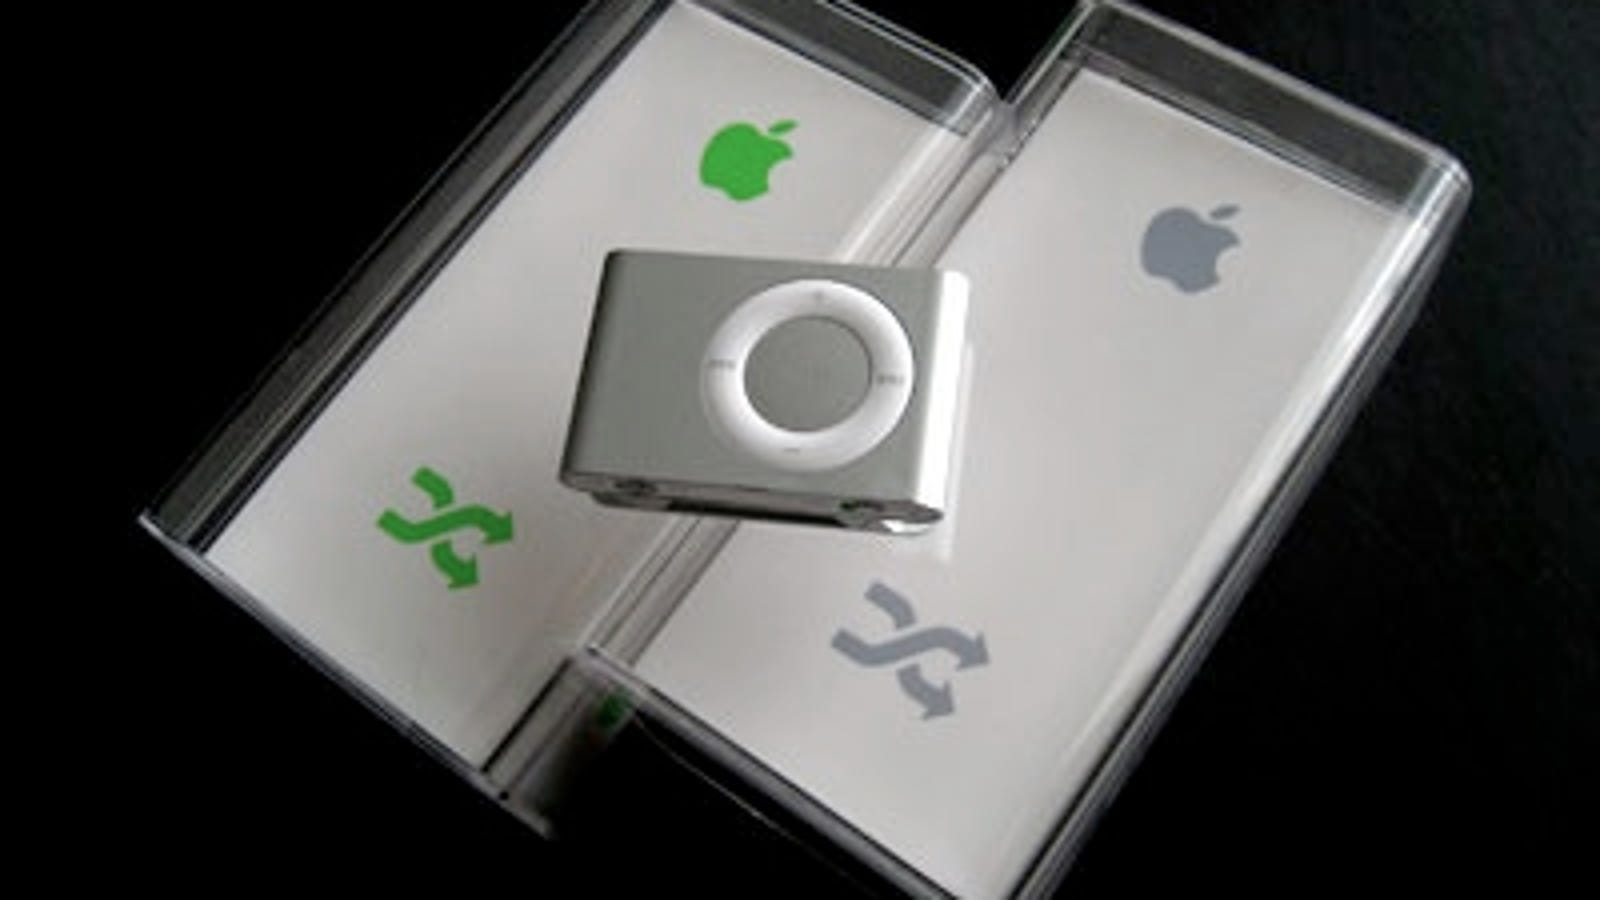 wireless dj style headphones - Get the Latest iPod shuffle Earbuds: Telling the Old Box vs. the New